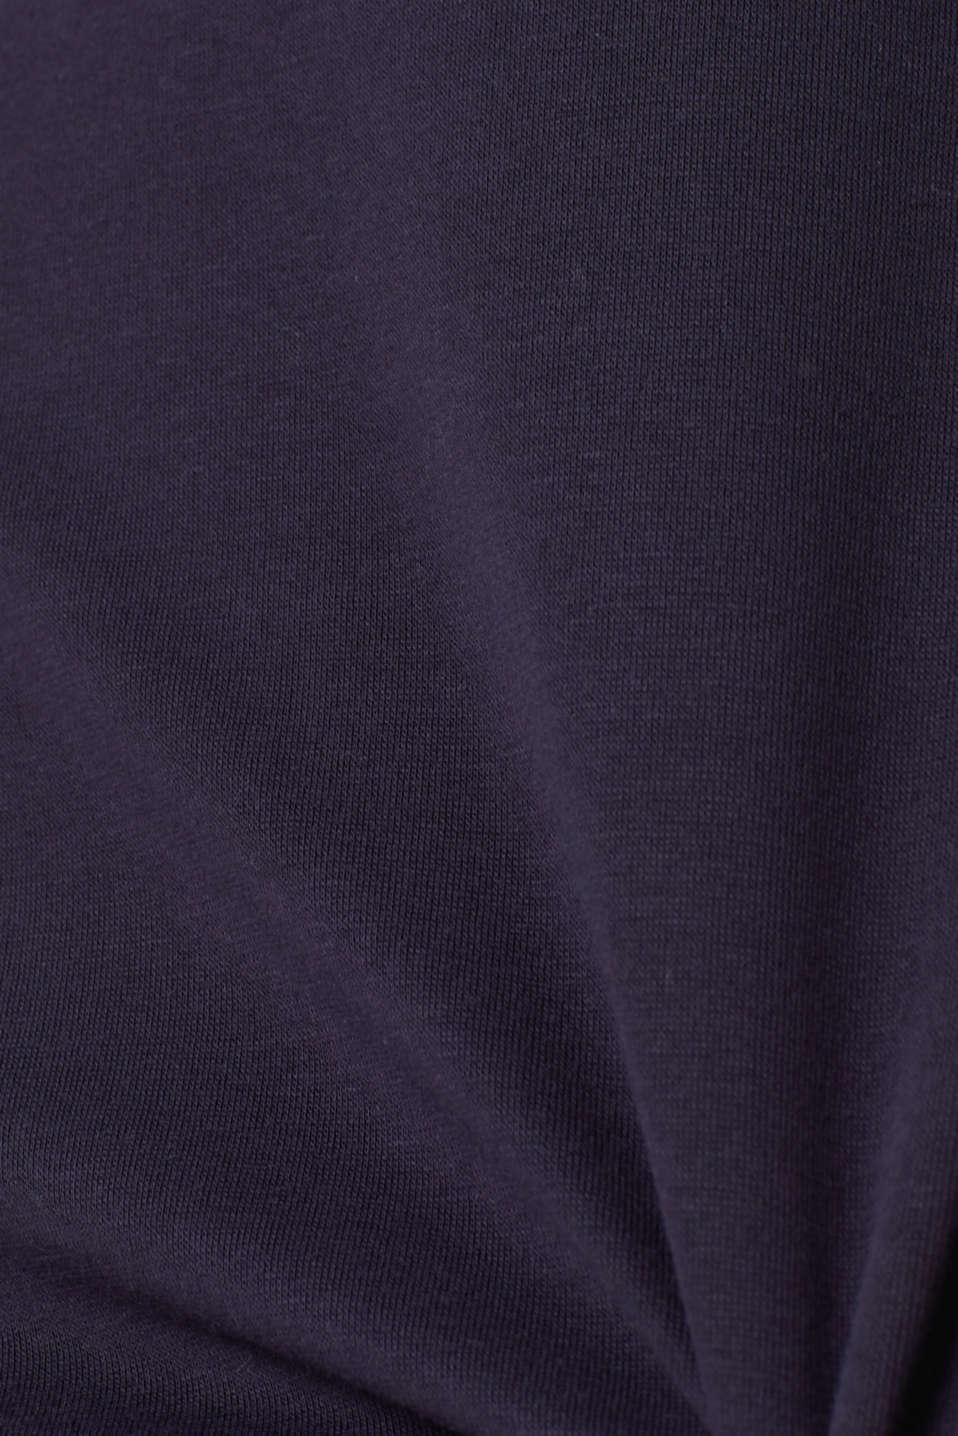 Piped stretch jersey dress, NAVY, detail image number 4